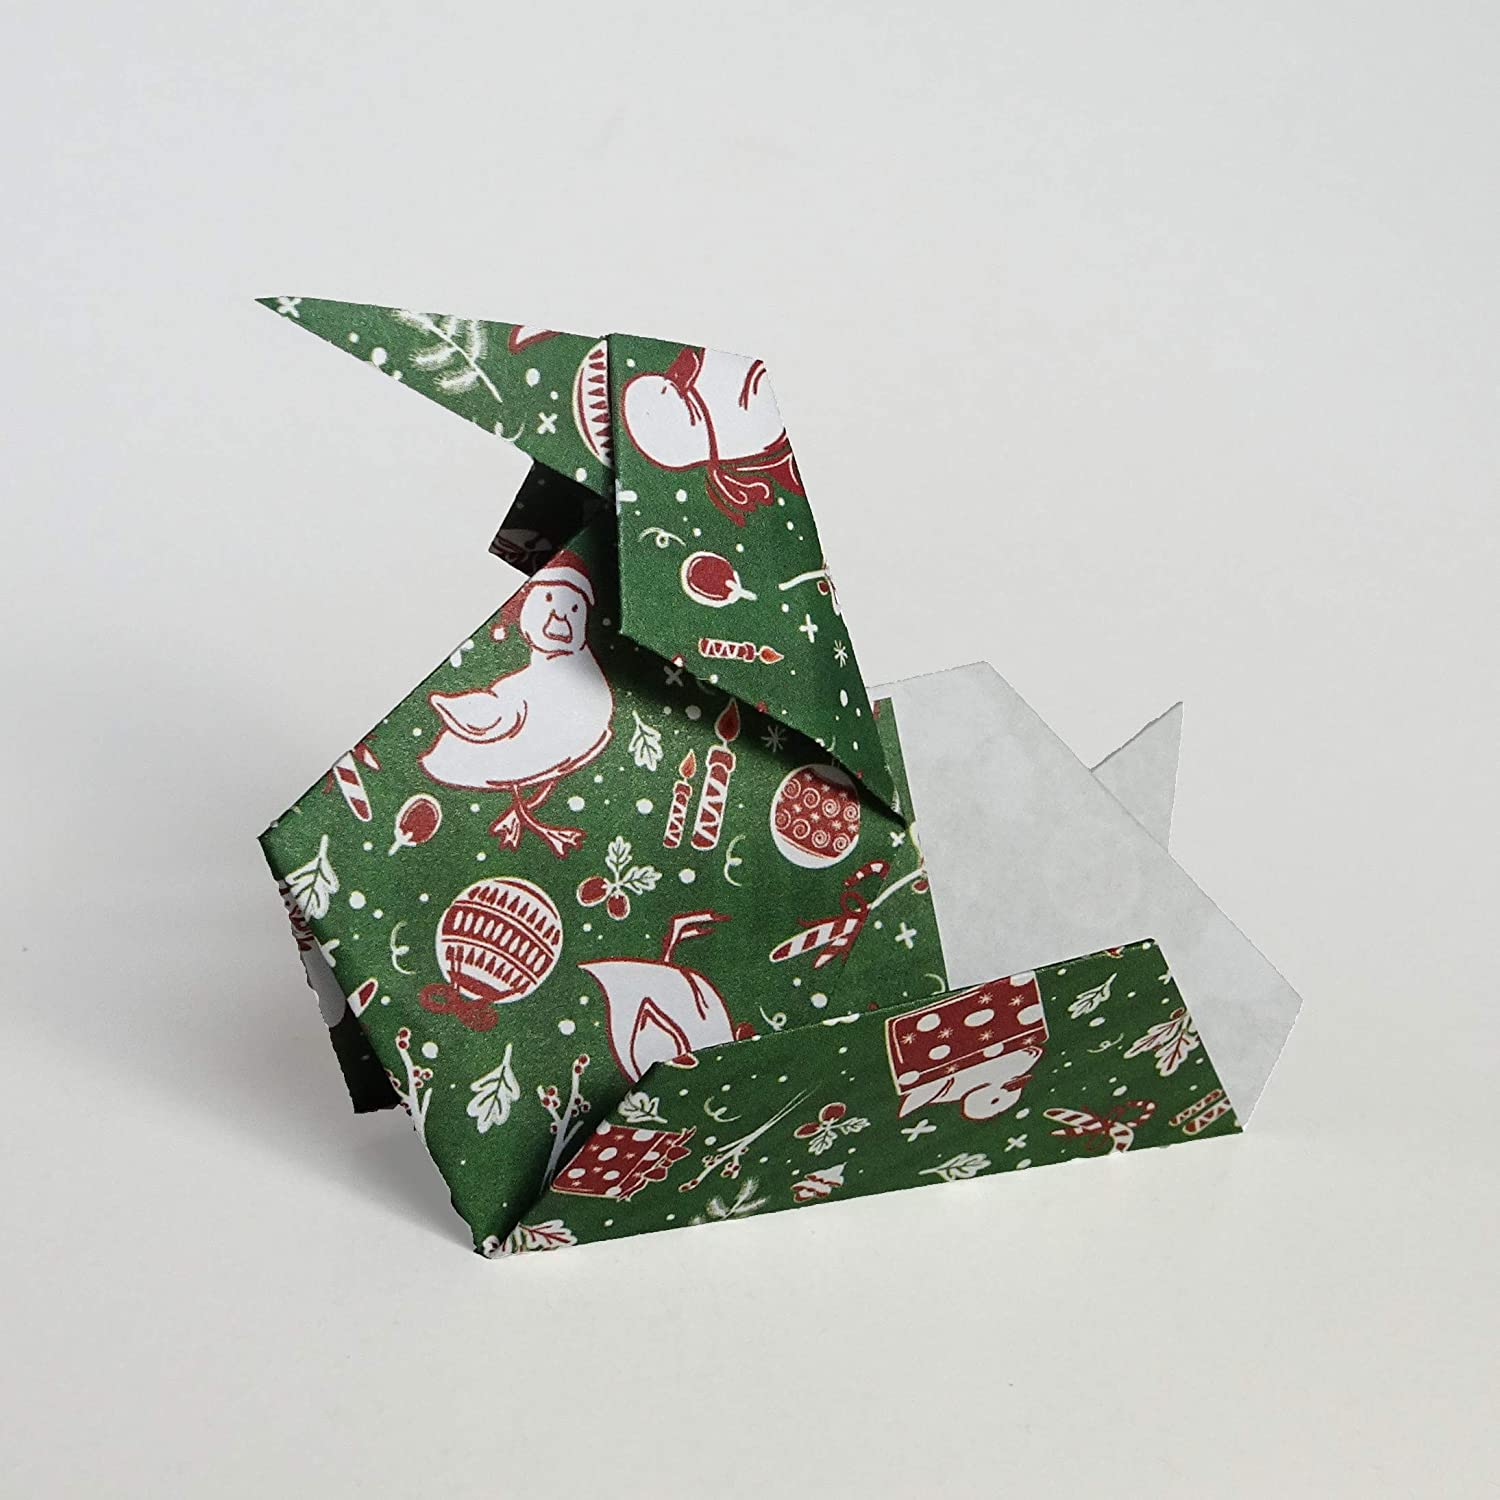 200 Sheets Large Christmas Collection Origami Paper Christmas Gift Set 15cm Square